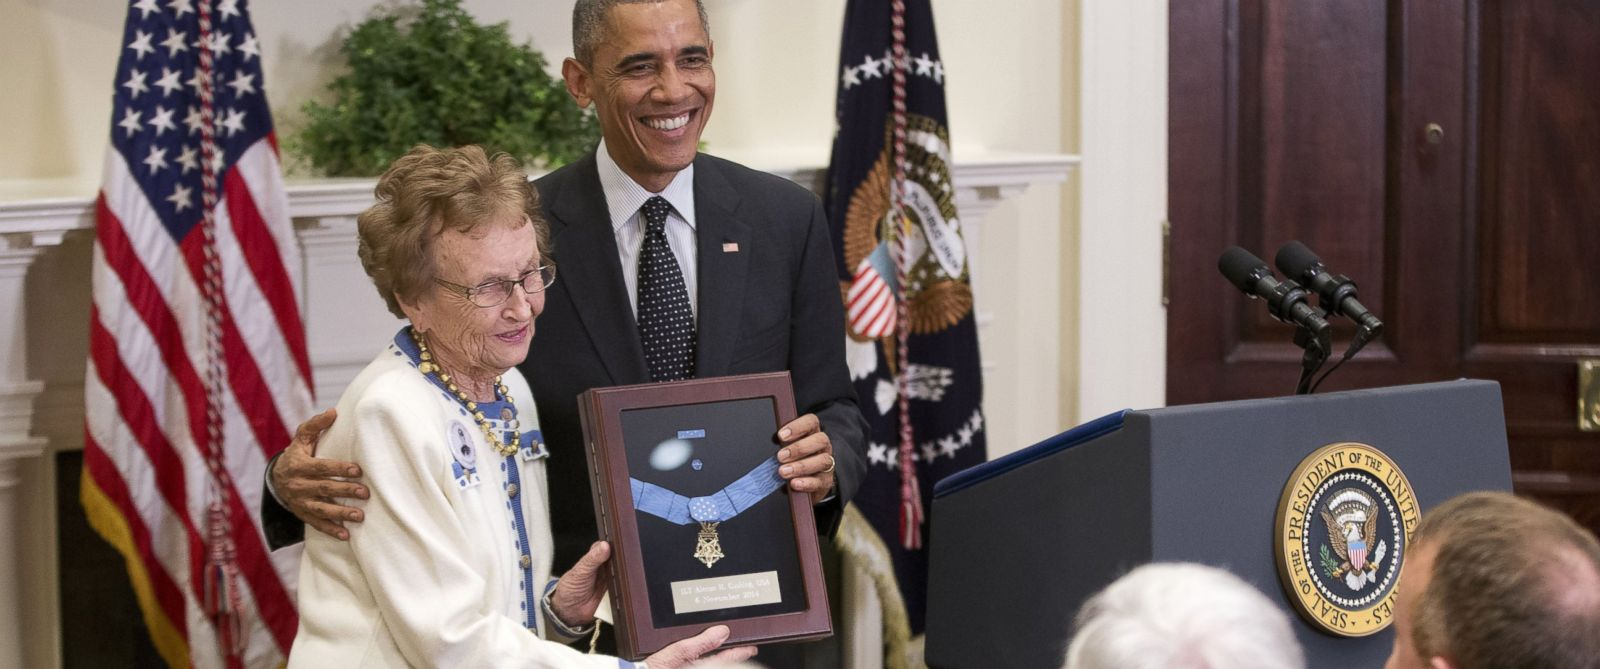 PHOTO: President Obama stands with Helen Loring Ensign as he awards the Medal of Honor posthumously to Army First Lt. Alonzo H. Cushing for conspicuous gallantry, on Nov. 6, 2014 at the White House in Washington, D.C.